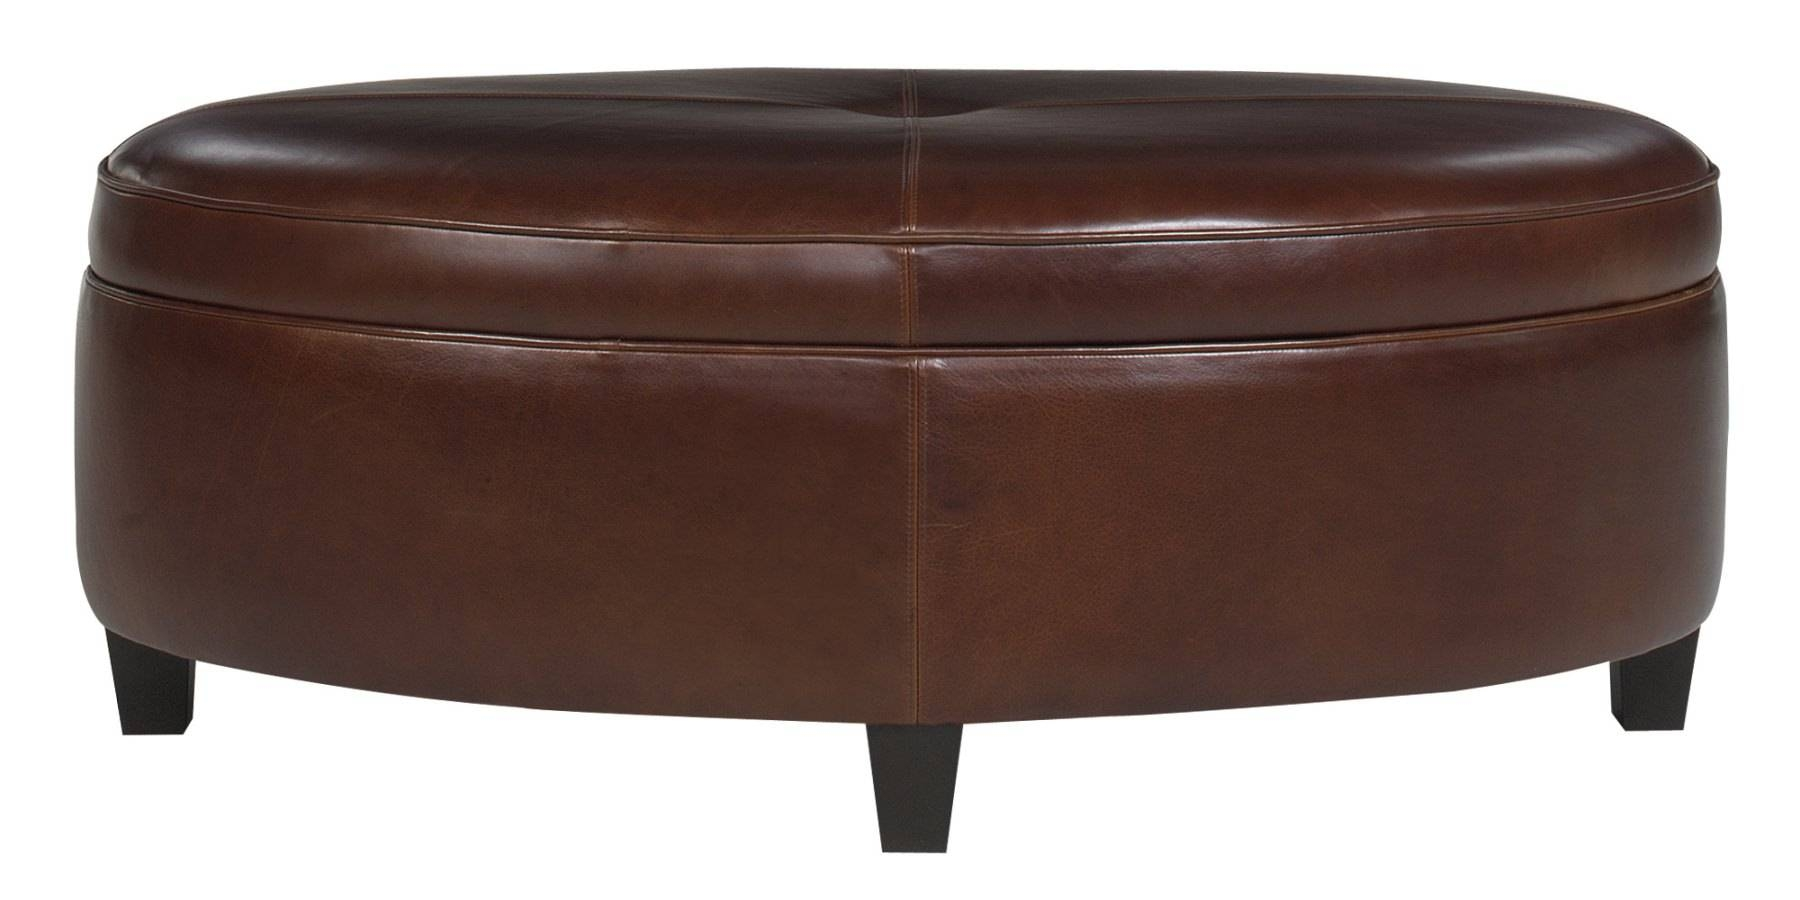 Furniture: Nice Oversized Ottoman For Living Room Furniture Idea pertaining to Round Upholstered Coffee Tables (Image 17 of 30)